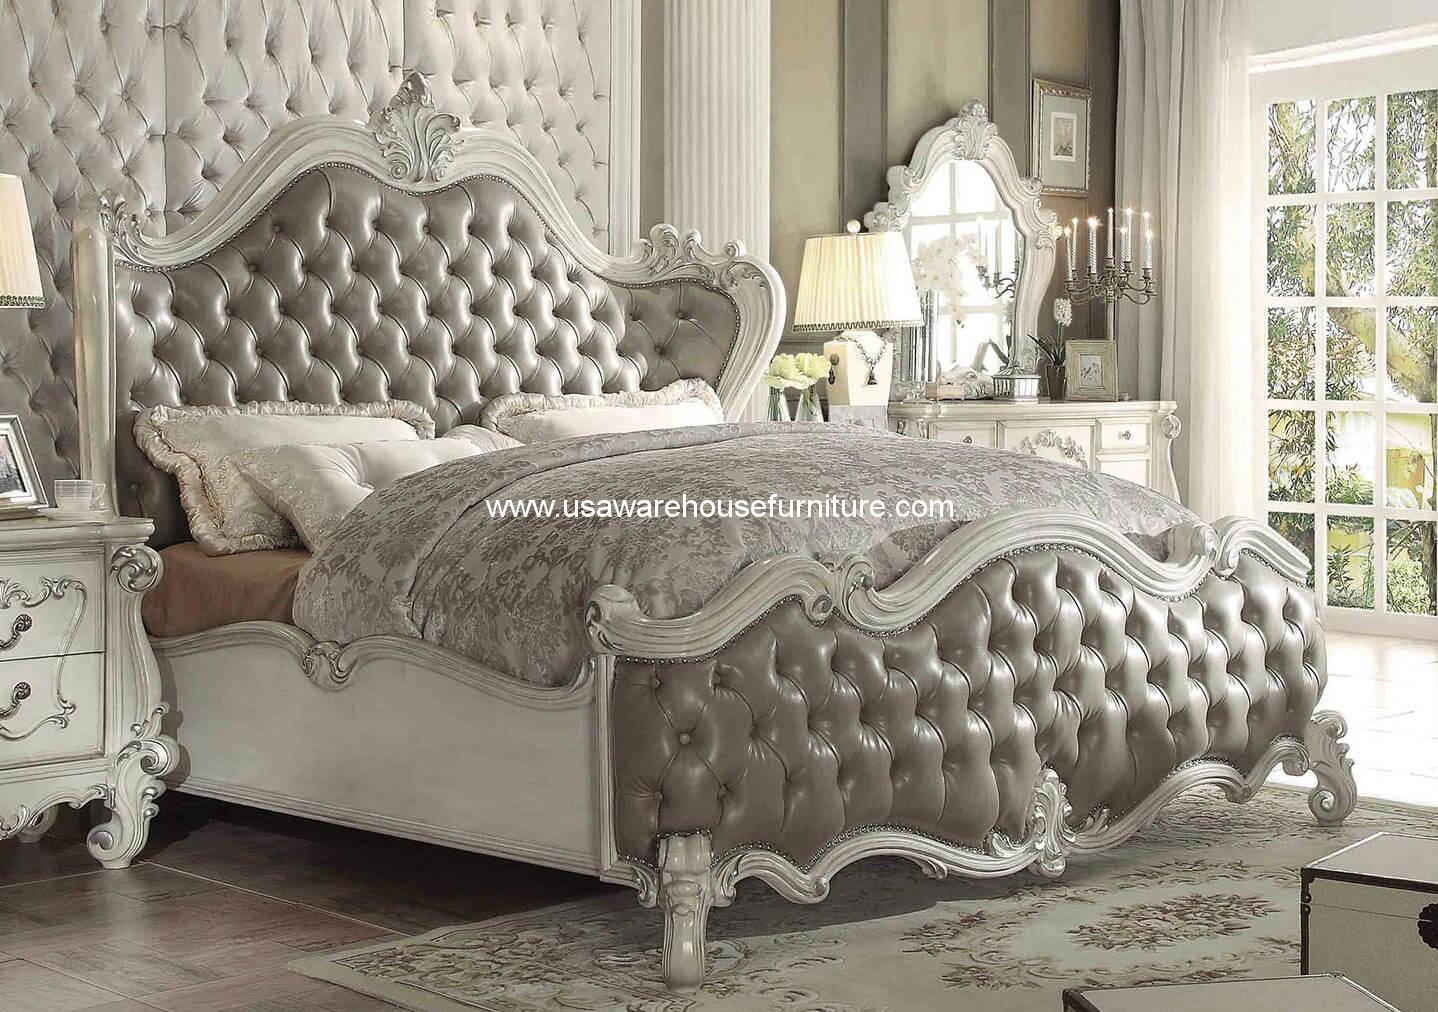 beds iron queen for best bed bedroomi decorate on vintage ideas dwfields white frames frame top pinterest intended cool renovation com pretty